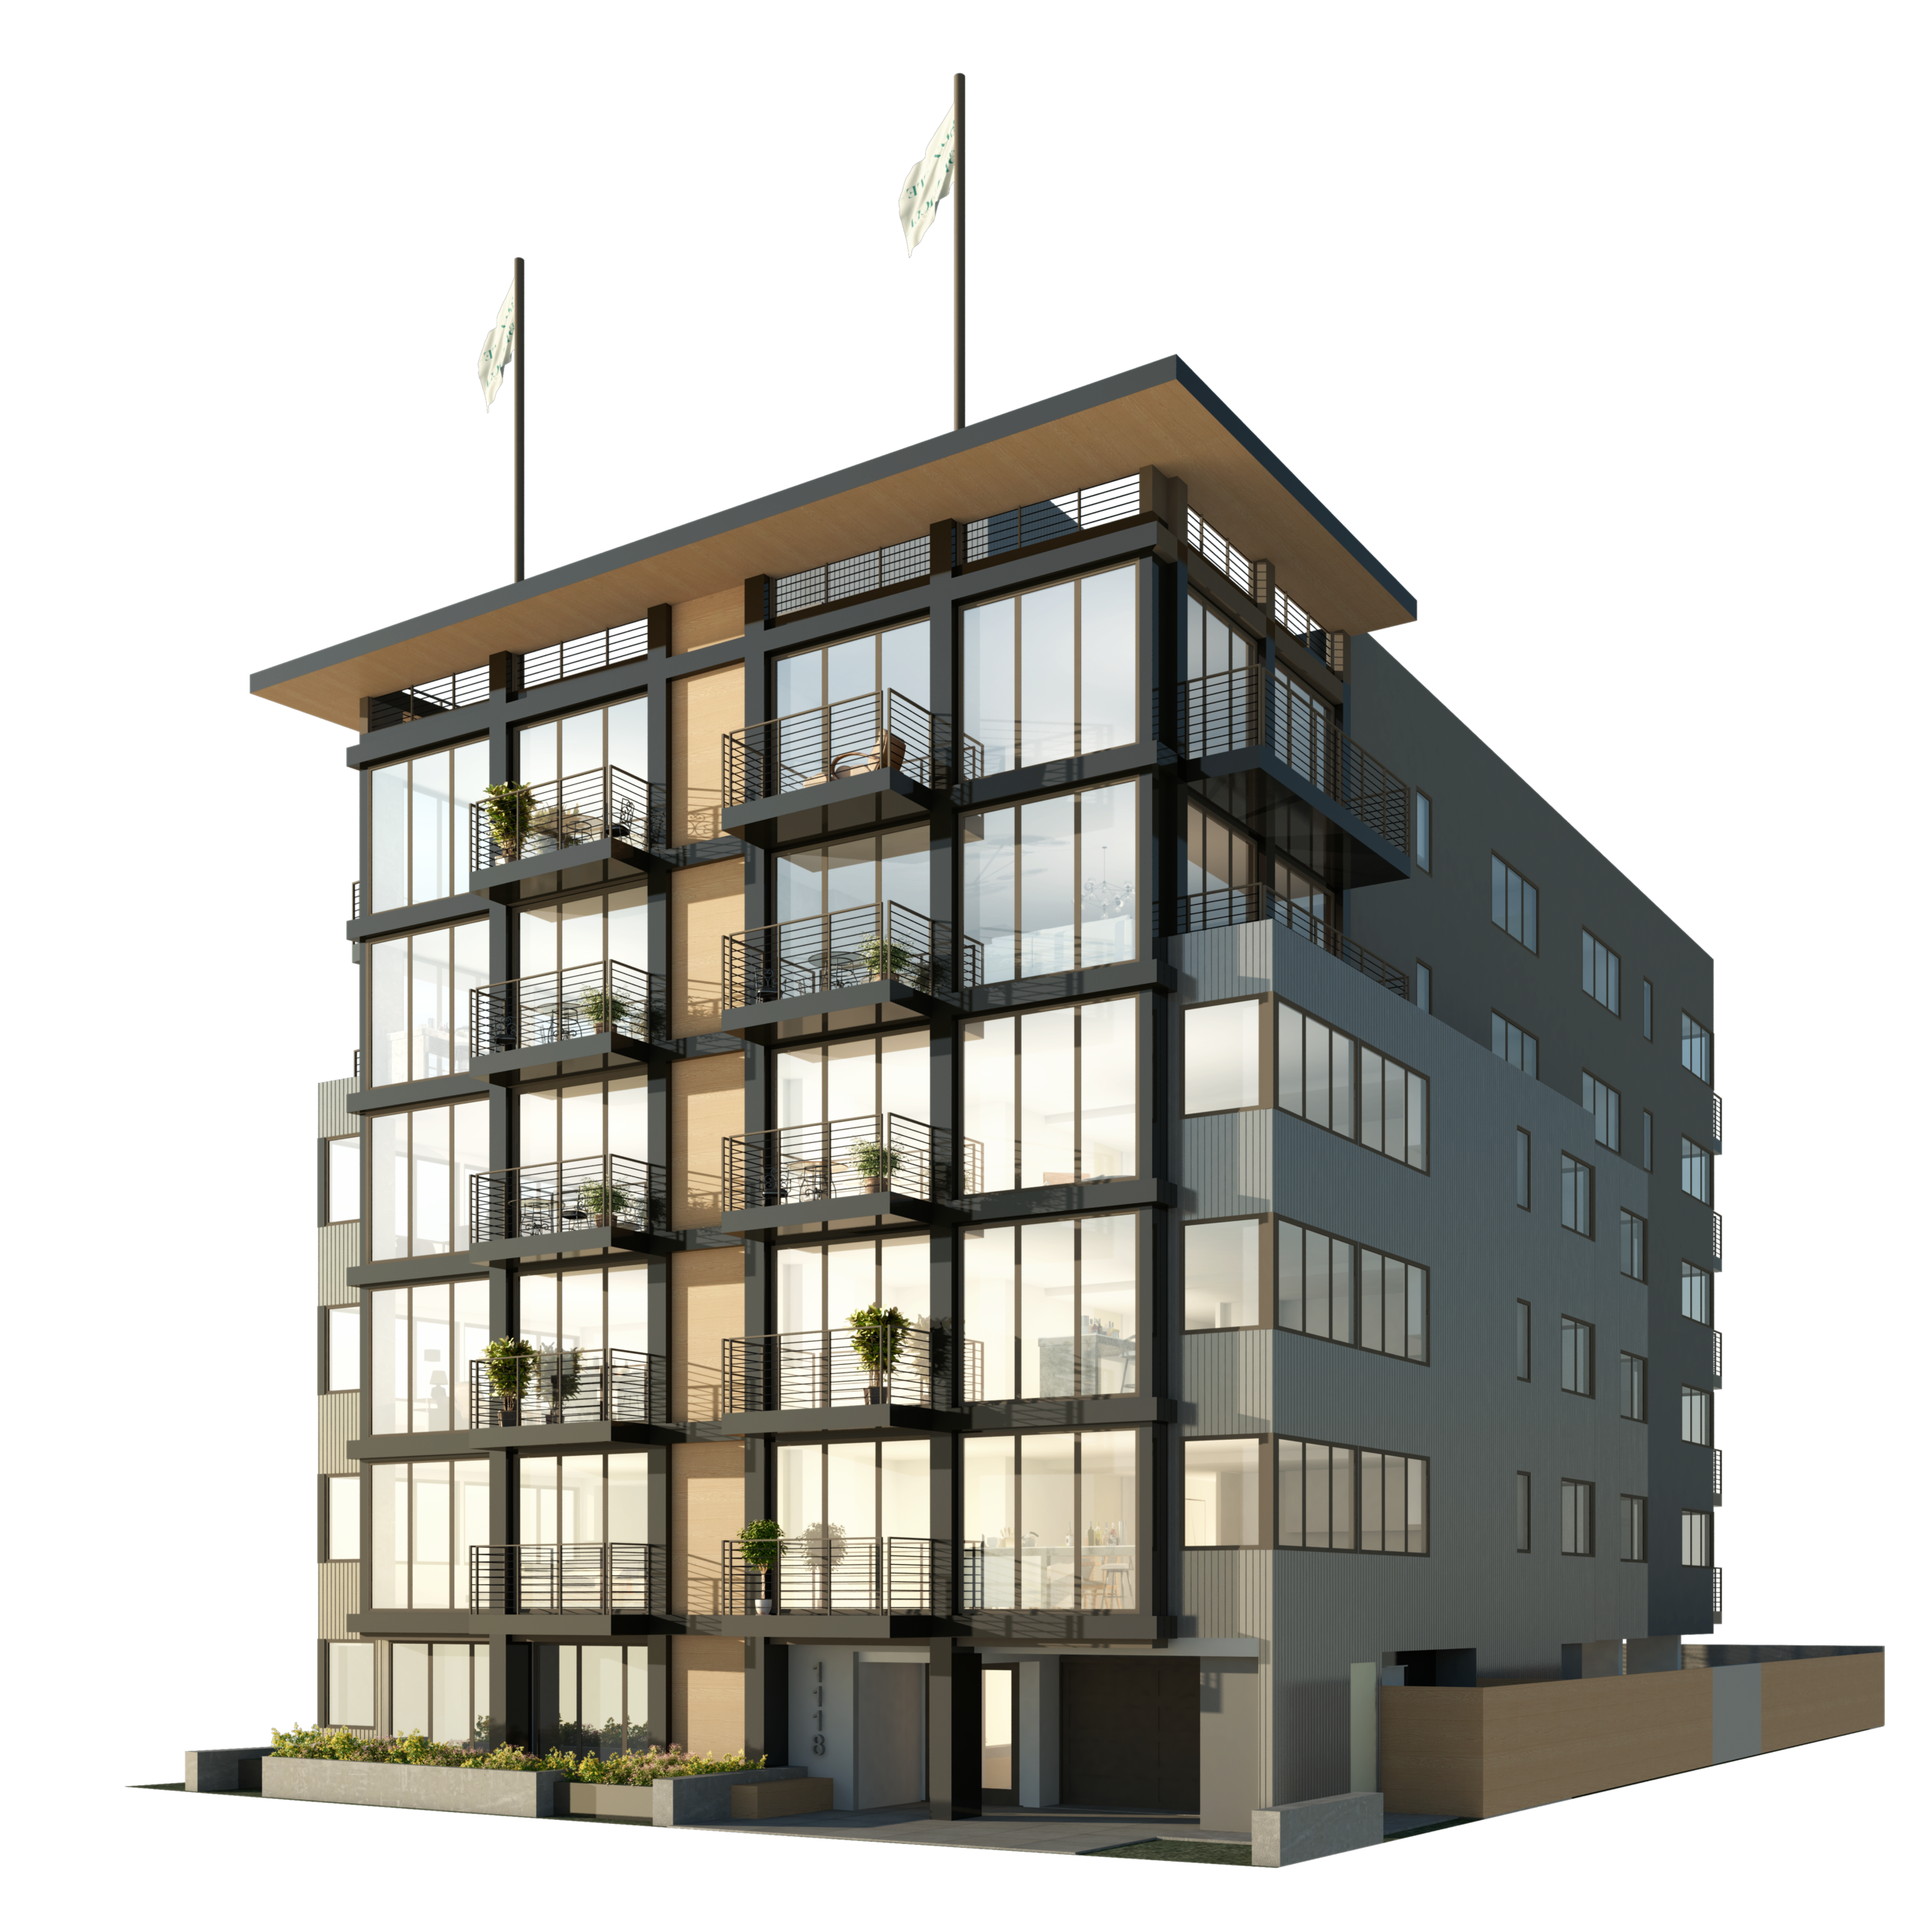 2707.01_171110_WestSeattleCondos_x02_D1.png